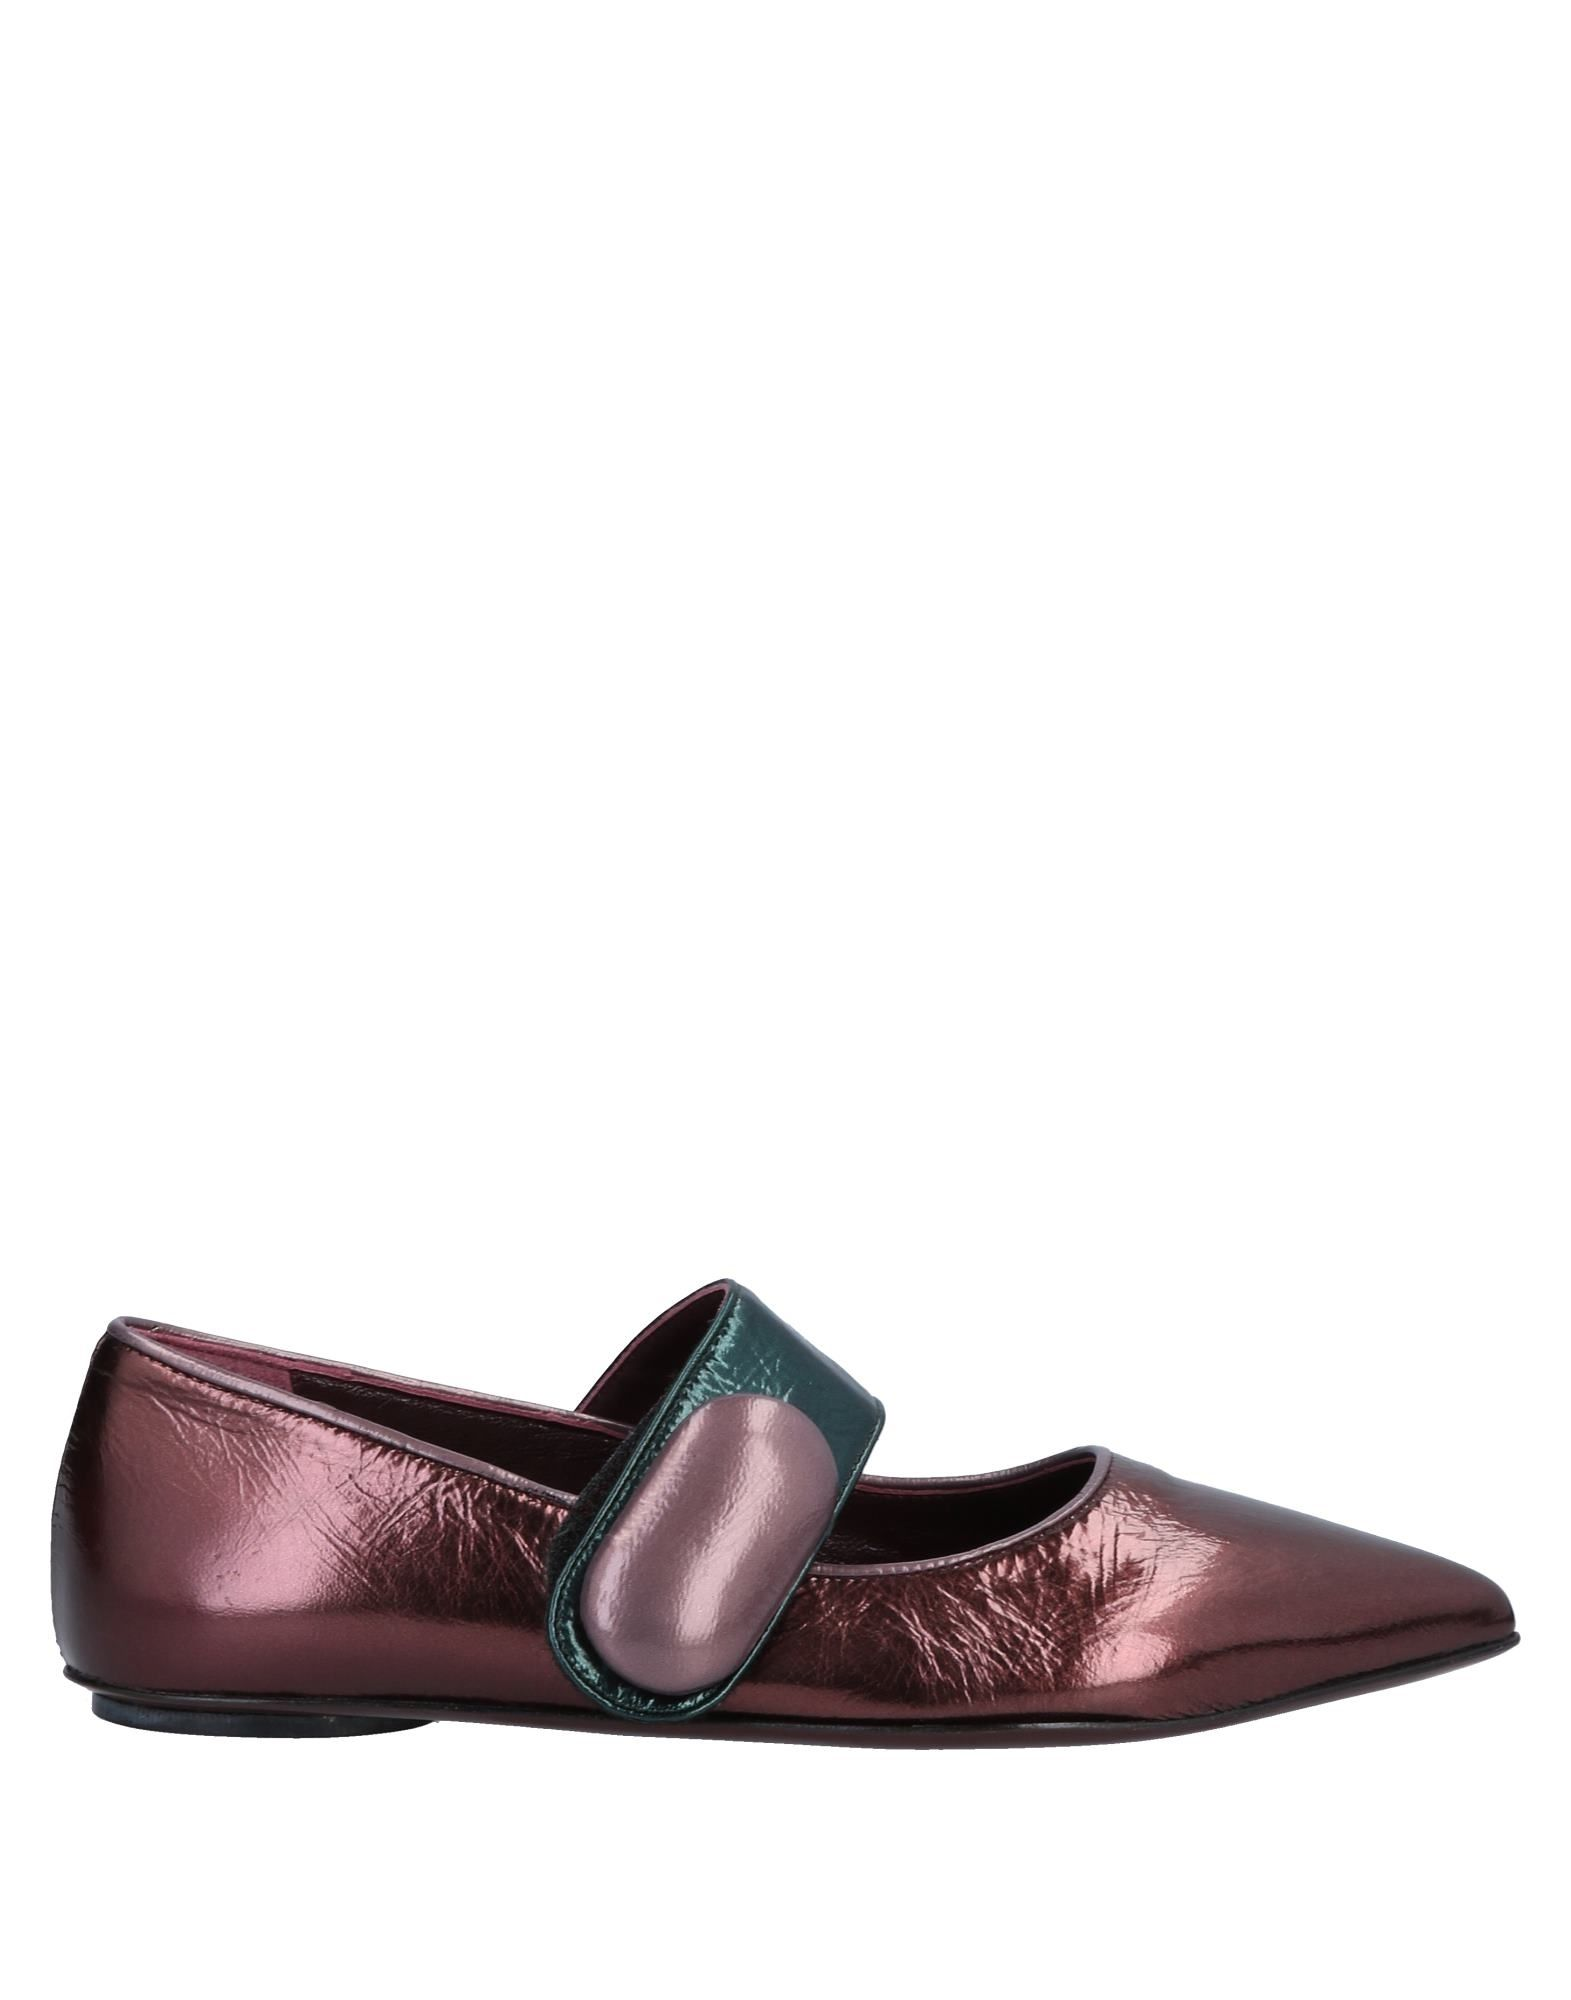 Antonio Marras Ballet Flats - Women online Antonio Marras Ballet Flats online Women on  Australia - 11566760XA 1b9324